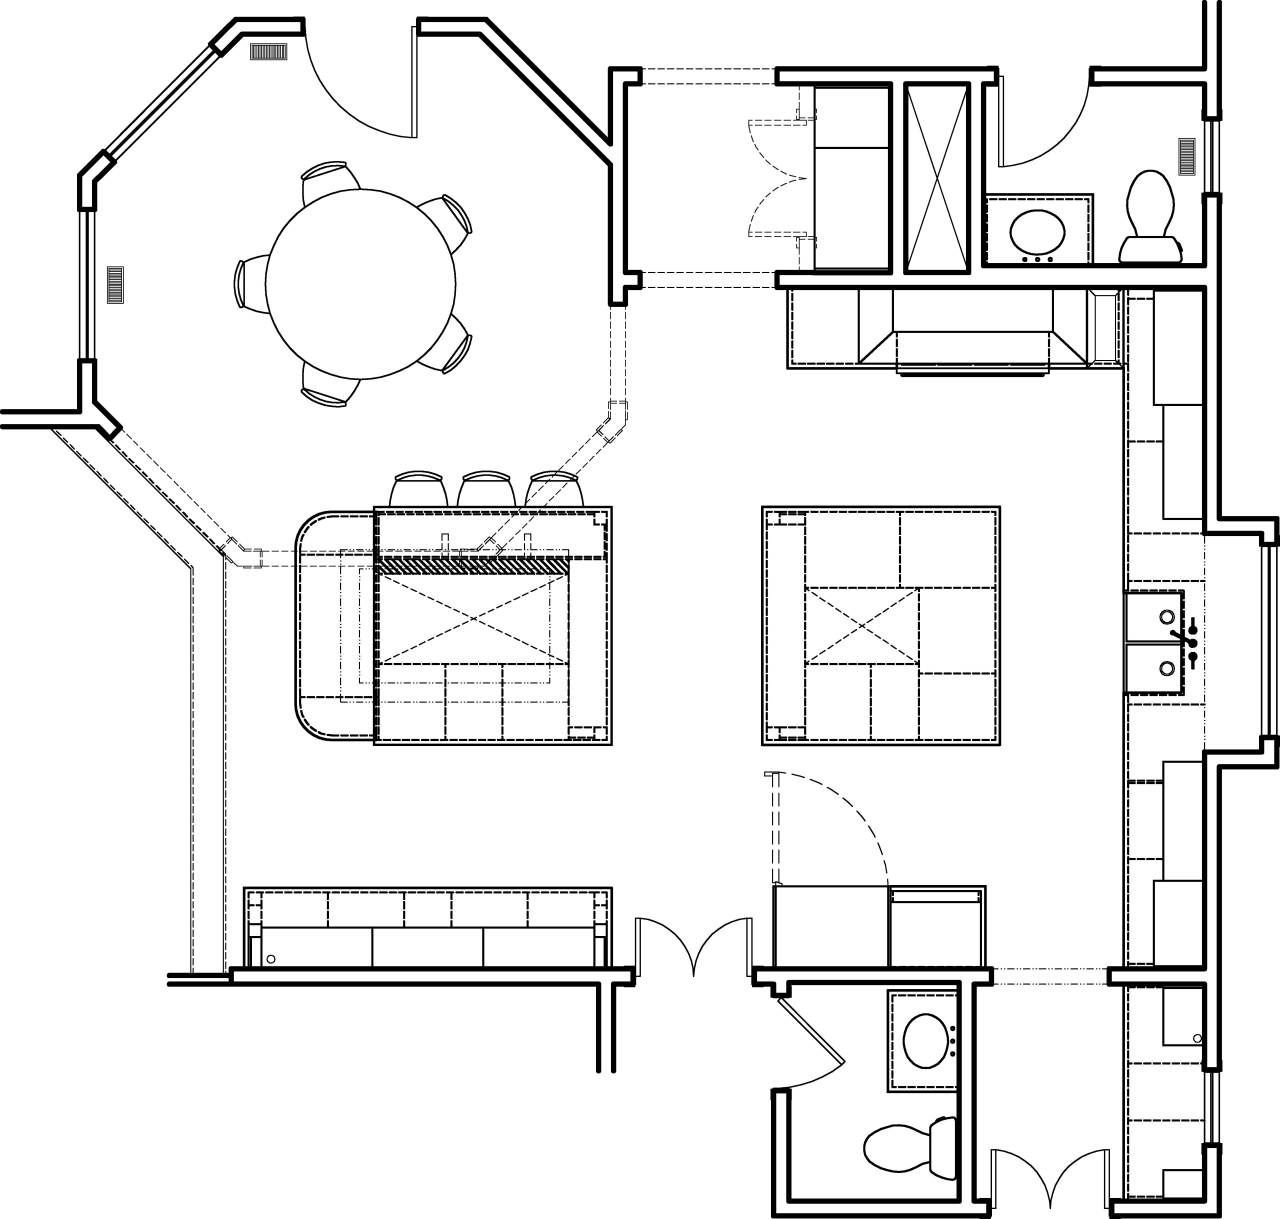 Plan of large kitchen with two square islands angle, area, black and white, design, diagram, drawing, floor plan, font, line, product, product design, structure, technical drawing, white